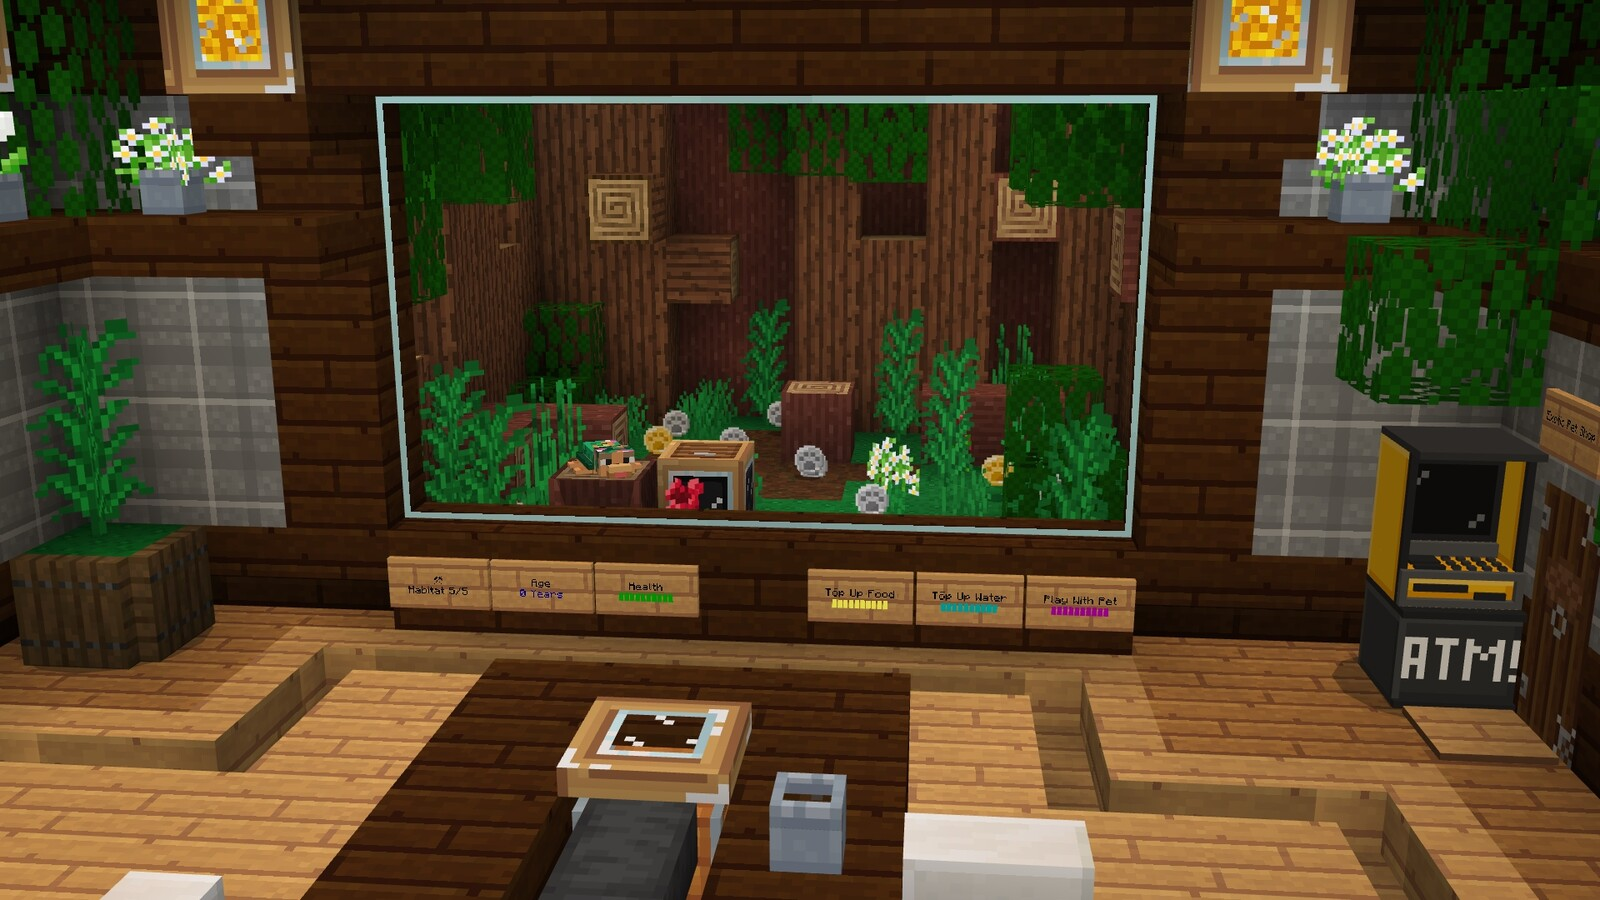 Cute grass pet sitting on the tree log. Coins ready to be collected and an ATM for your transactions!